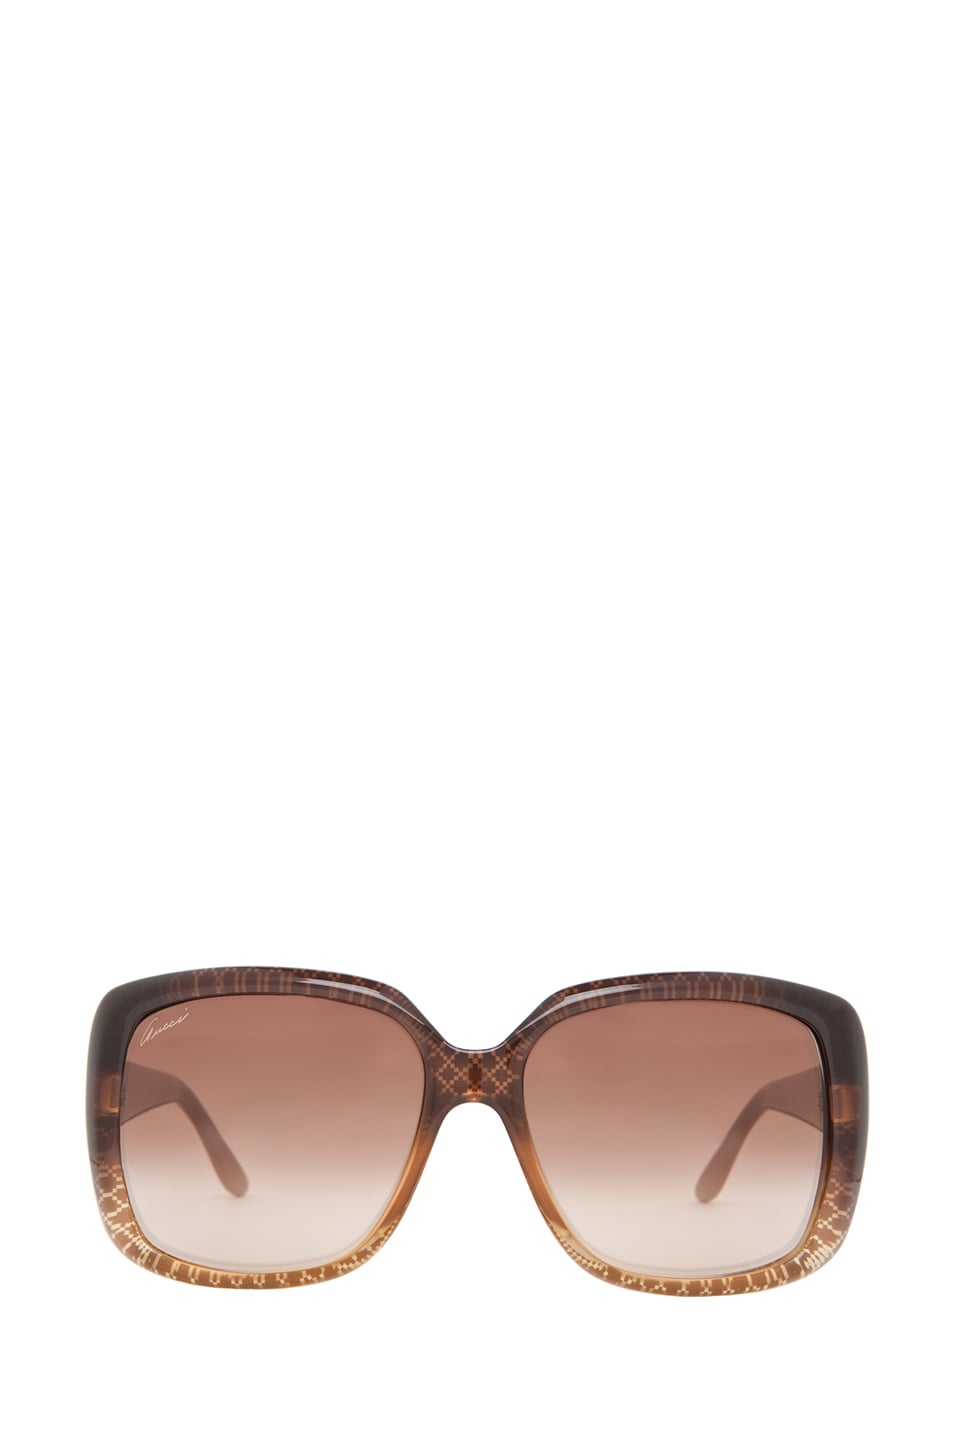 Image 1 of Gucci 3574 Sunglasses in Cuir Gold Diamond & Brown Gradient